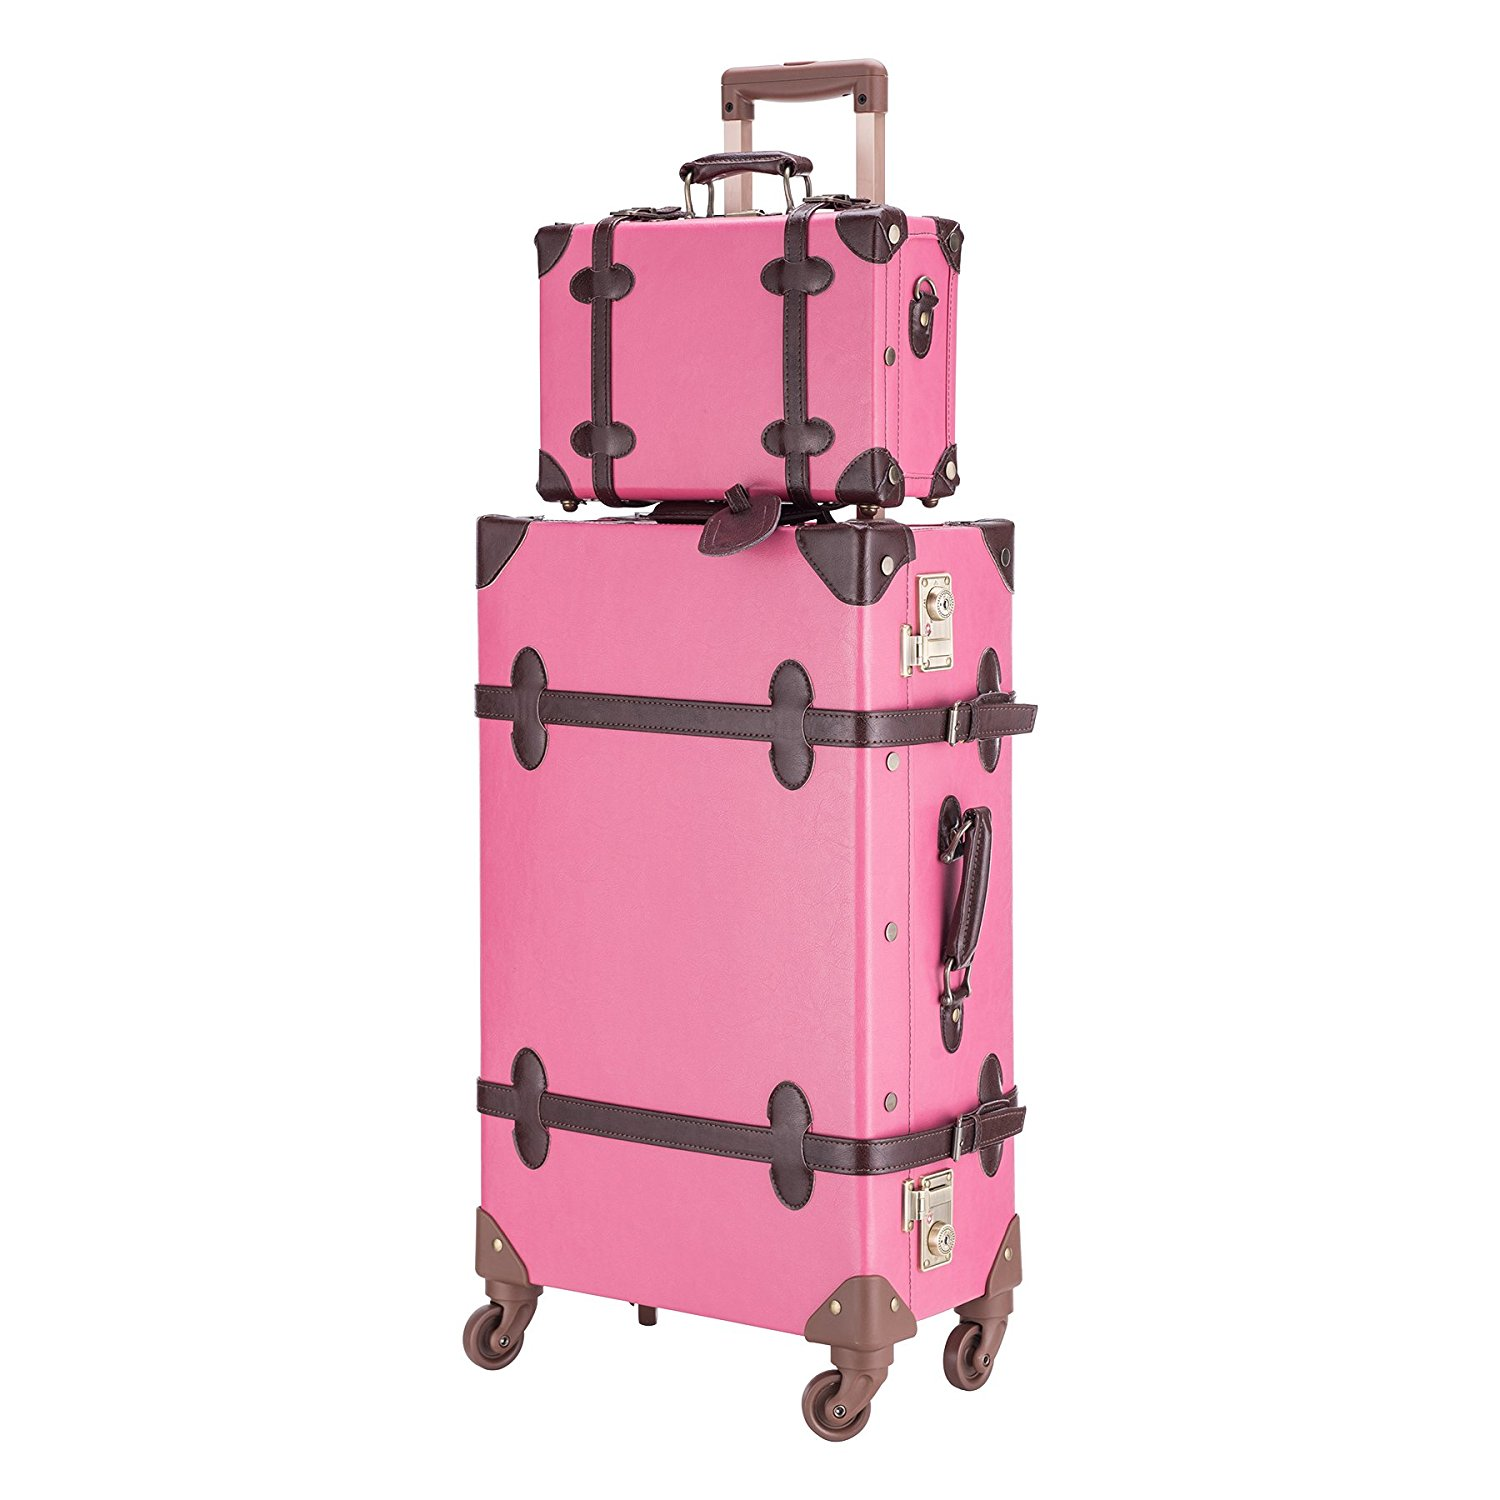 co-z premium vintage luggage sets